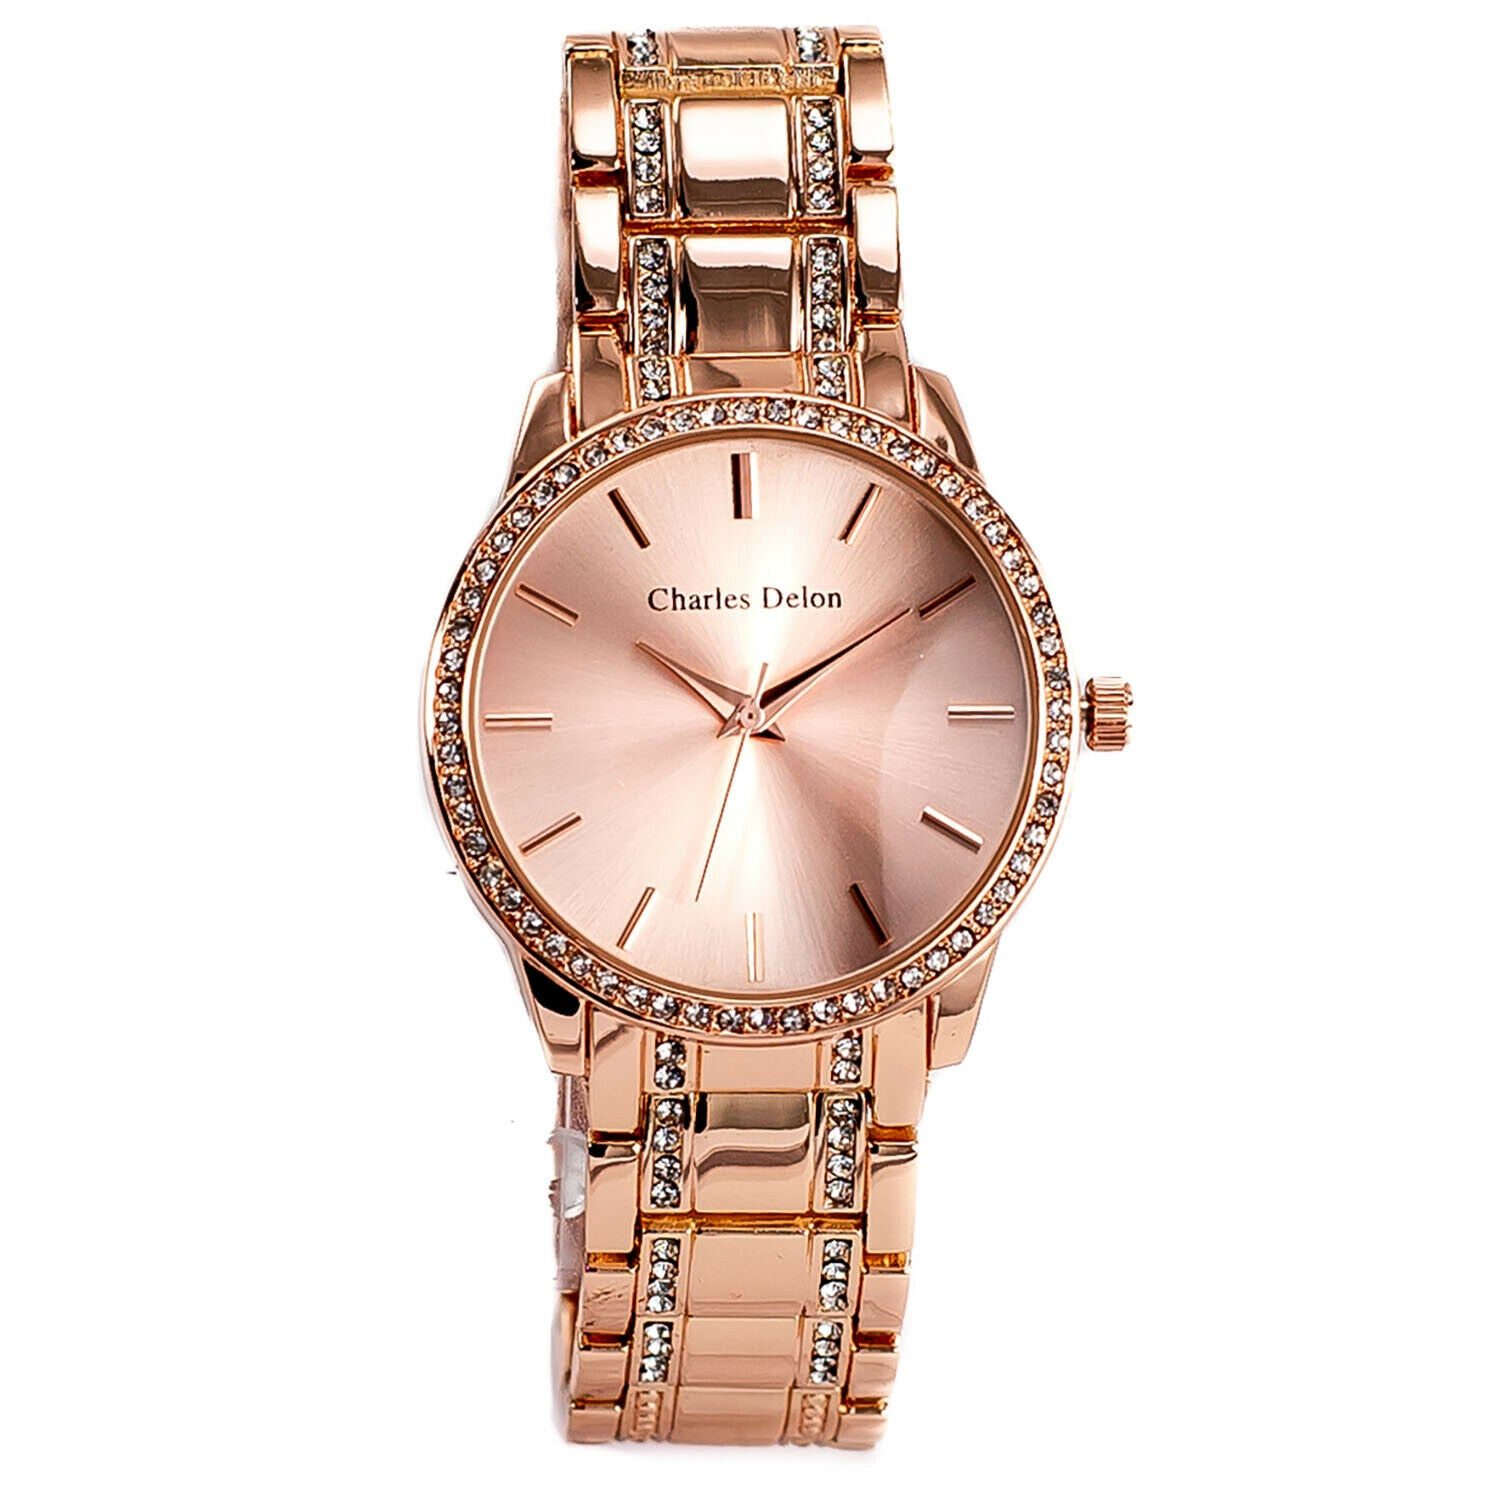 Charles Delon Women's Stainless Steel Quartz Watch (6 Styles Available) - Ships Same Day!